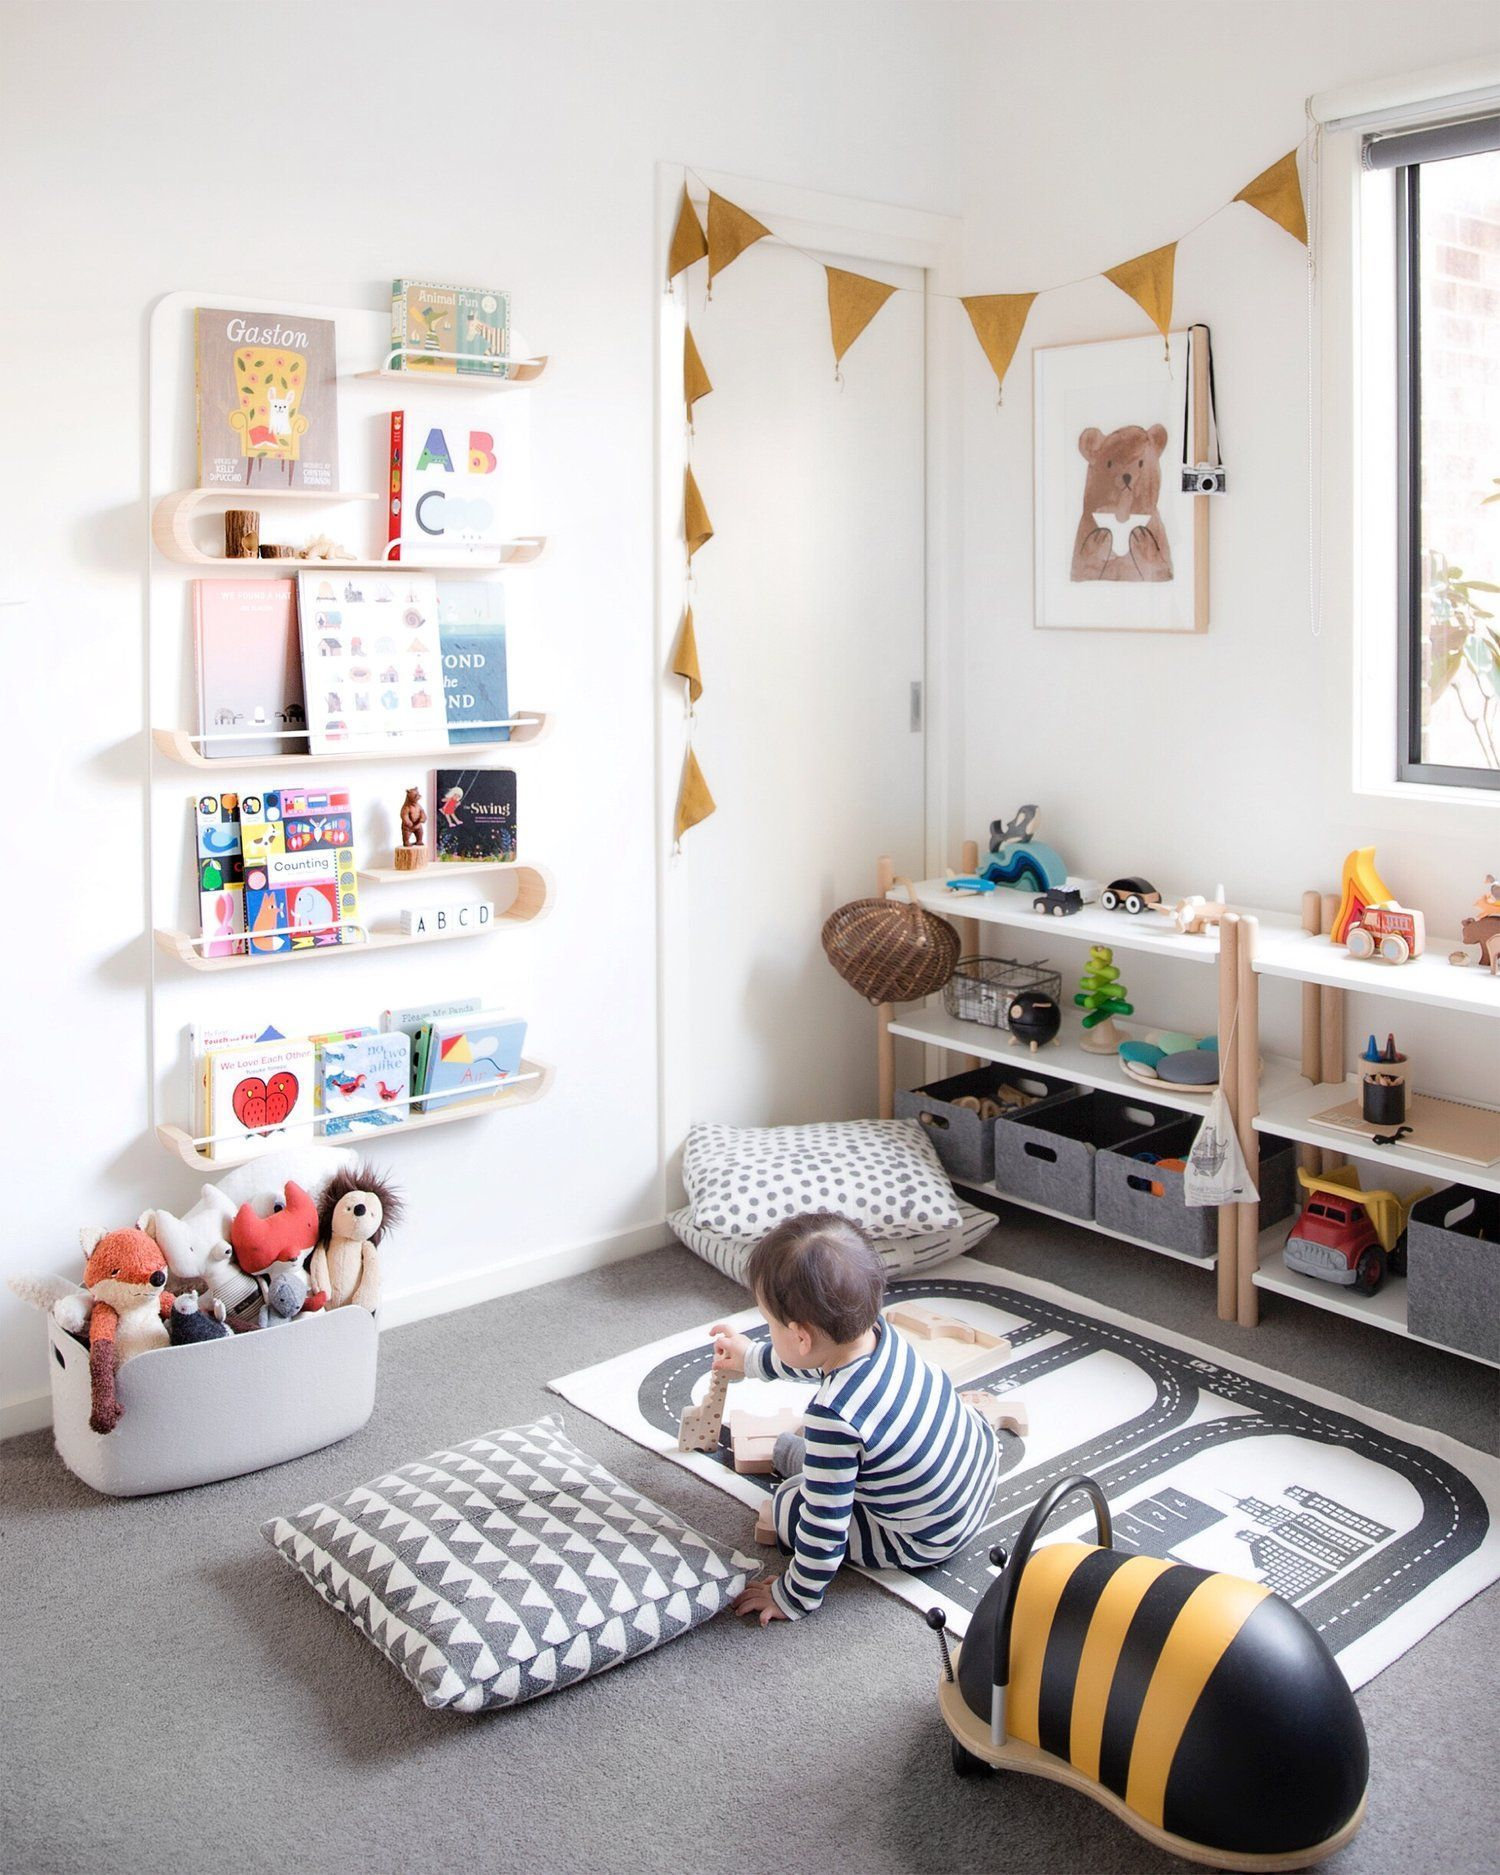 20 Latest Trend Of Cute Baby Boy Room Ideas #Decorideas